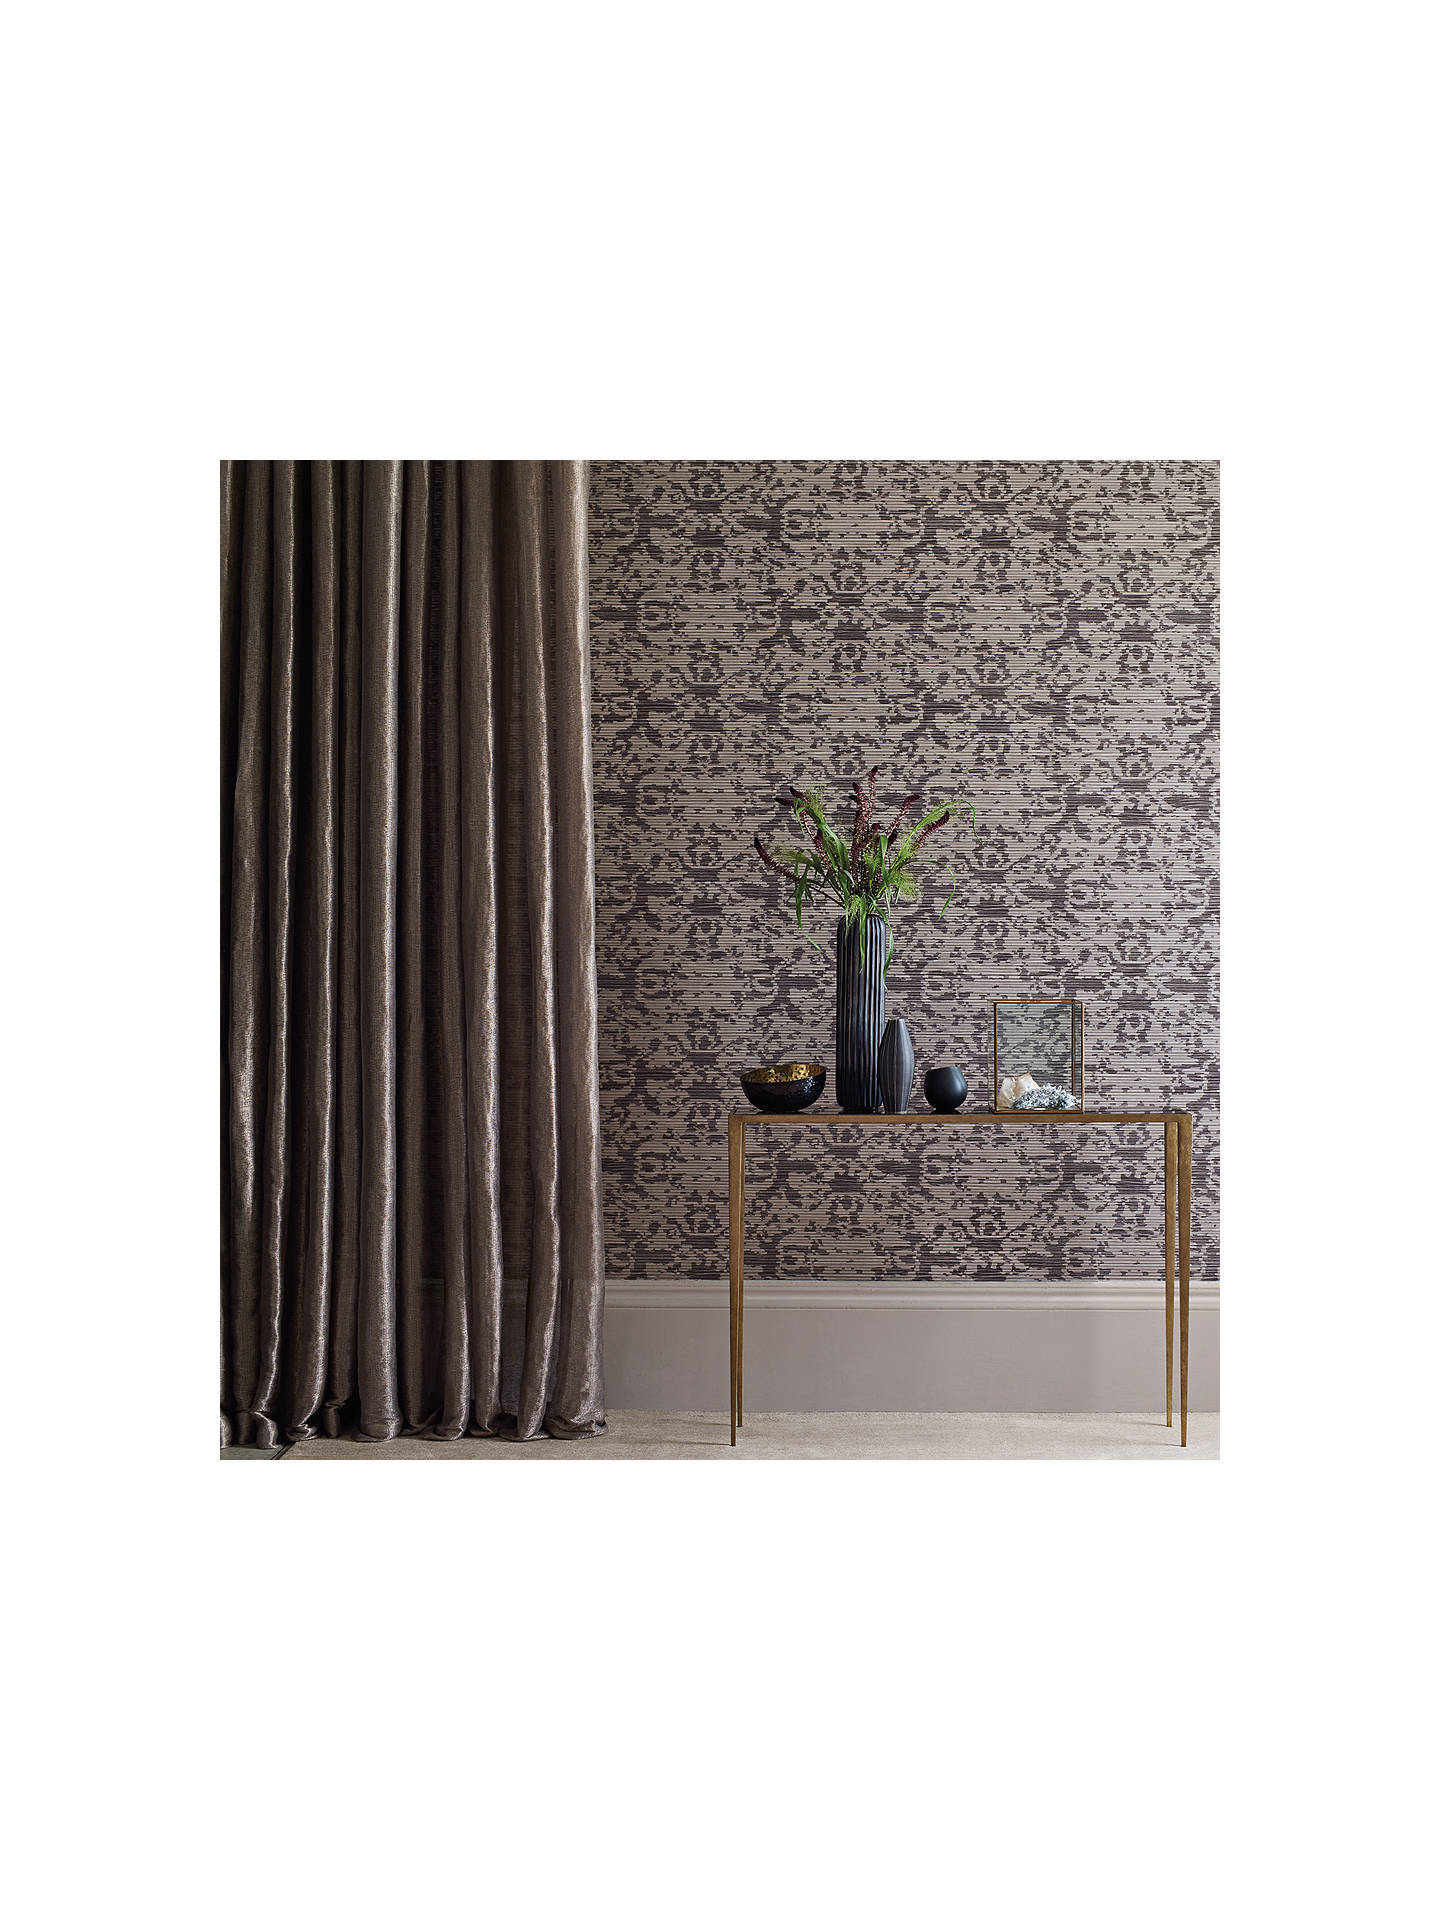 Buy Black Edition Iroko Paste the Wall Wallpaper, Ash W905/04 Online at johnlewis.com